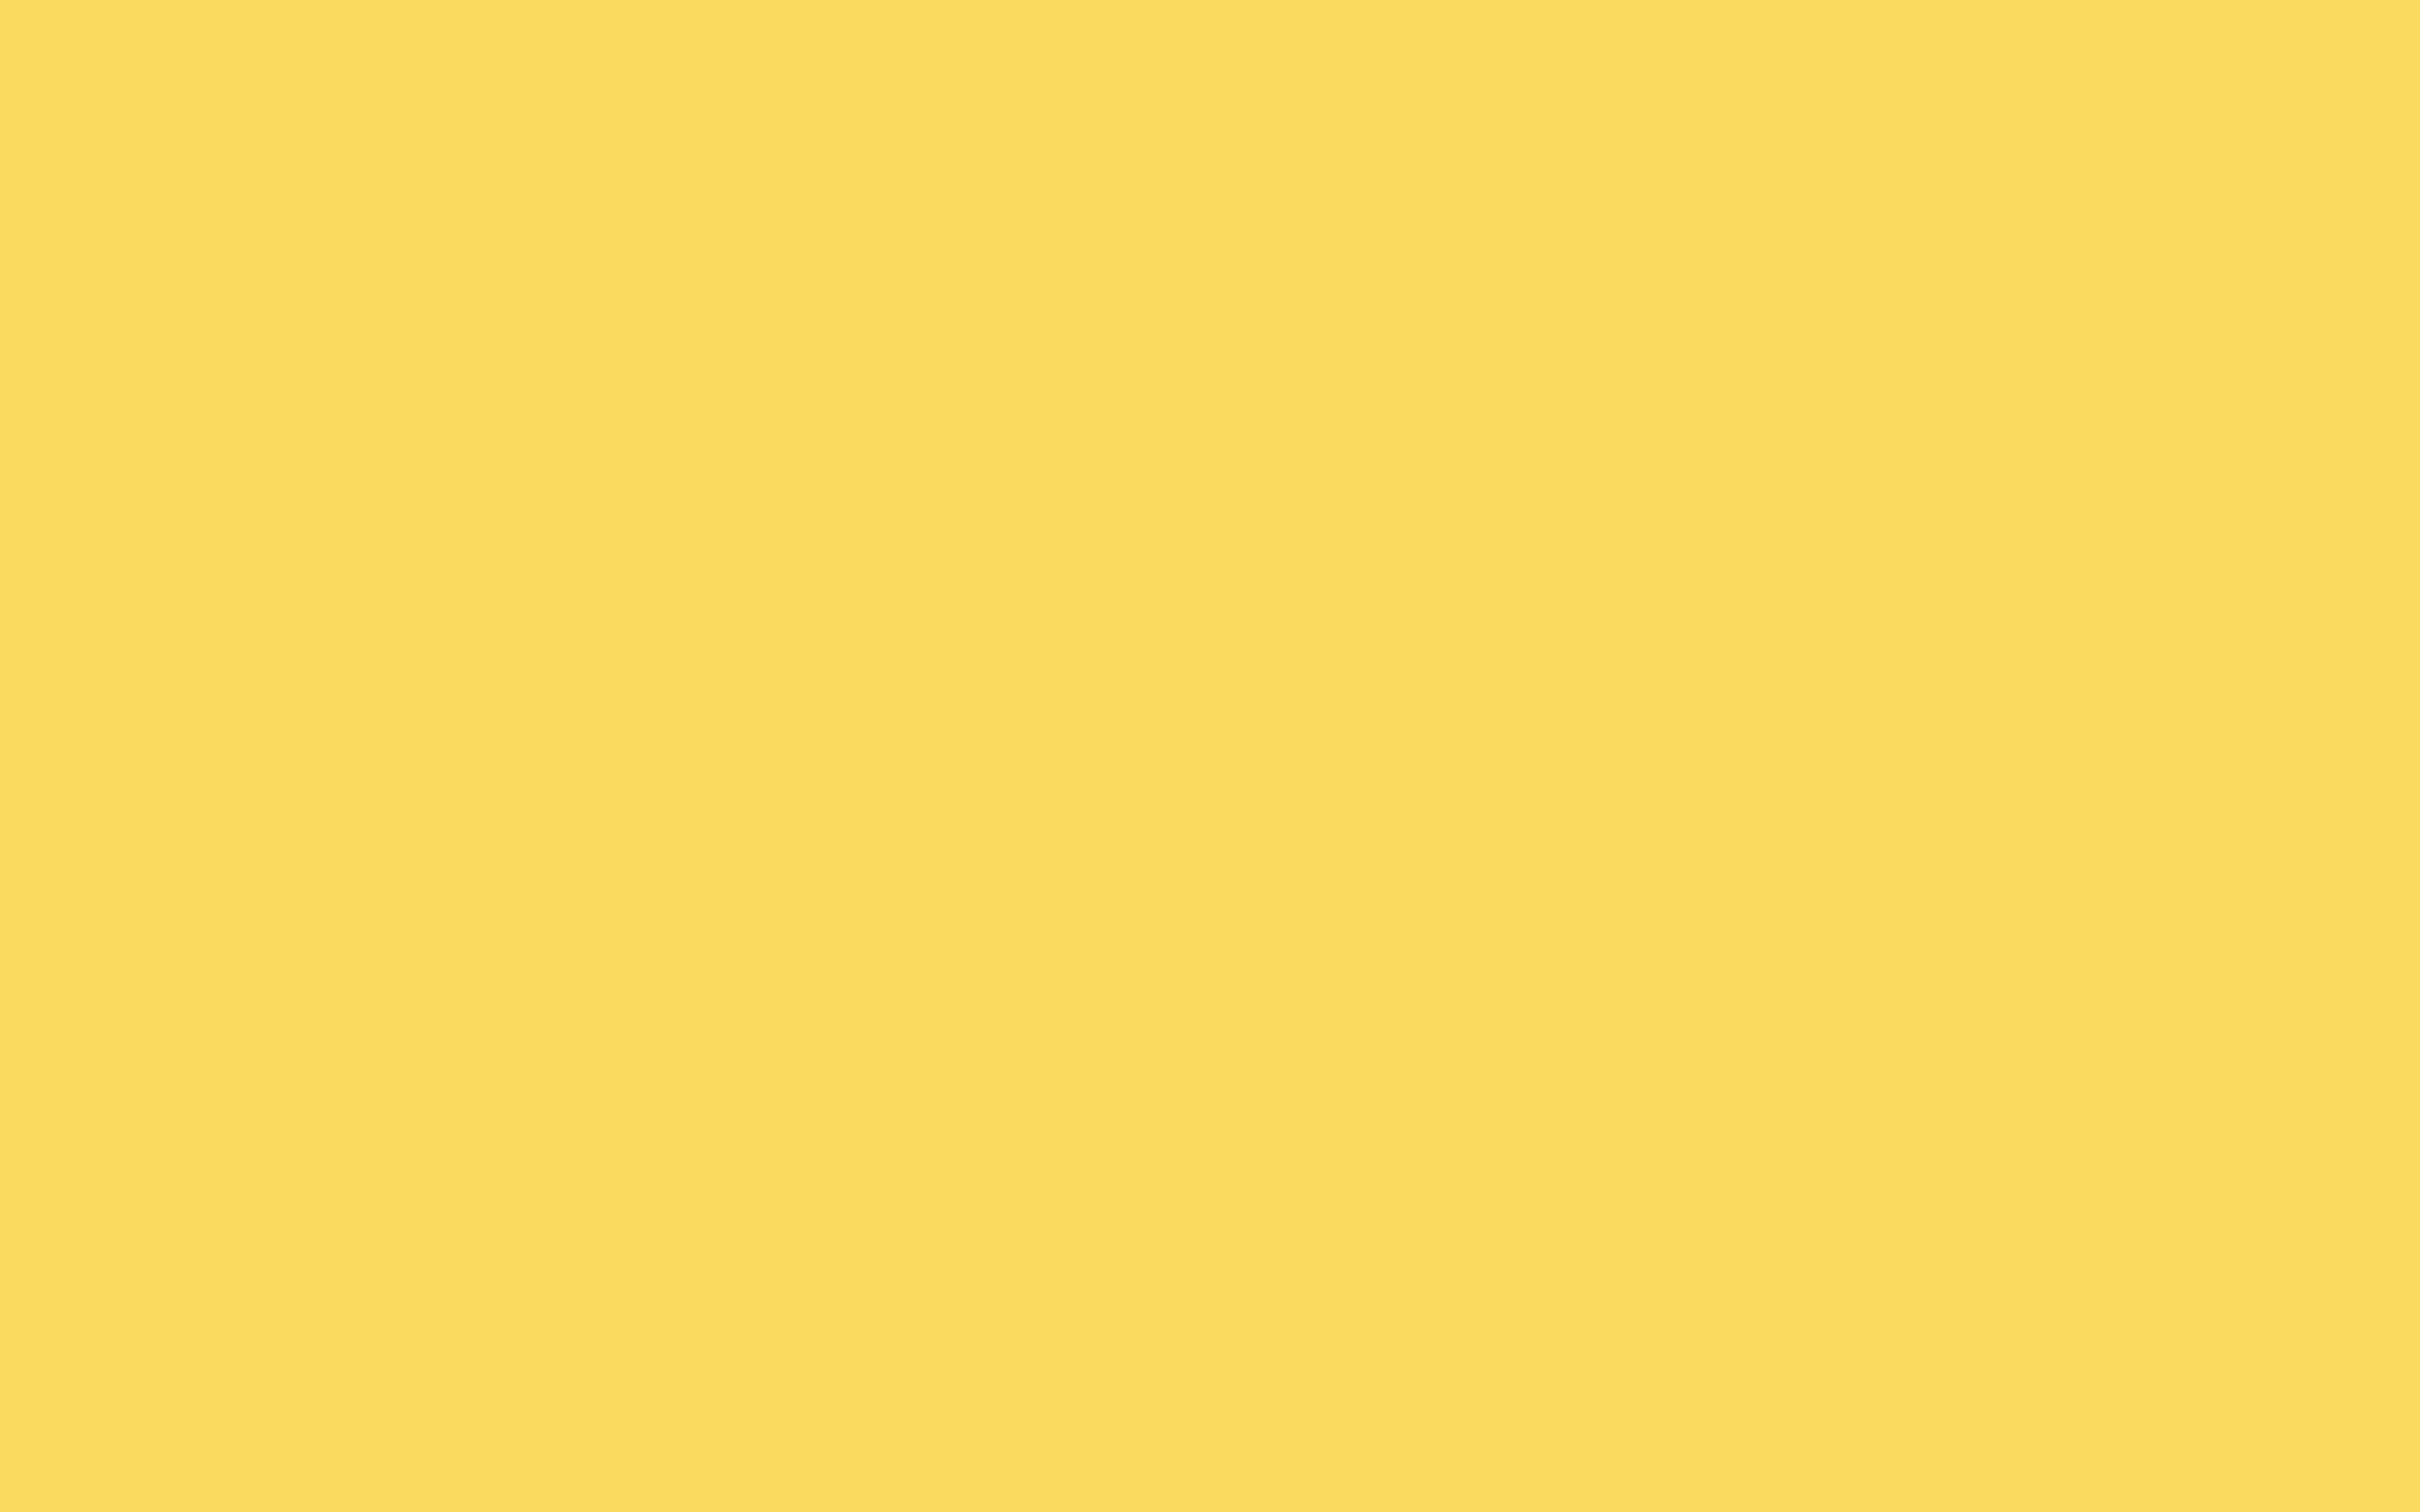 2560x1600 Royal Yellow Solid Color Background